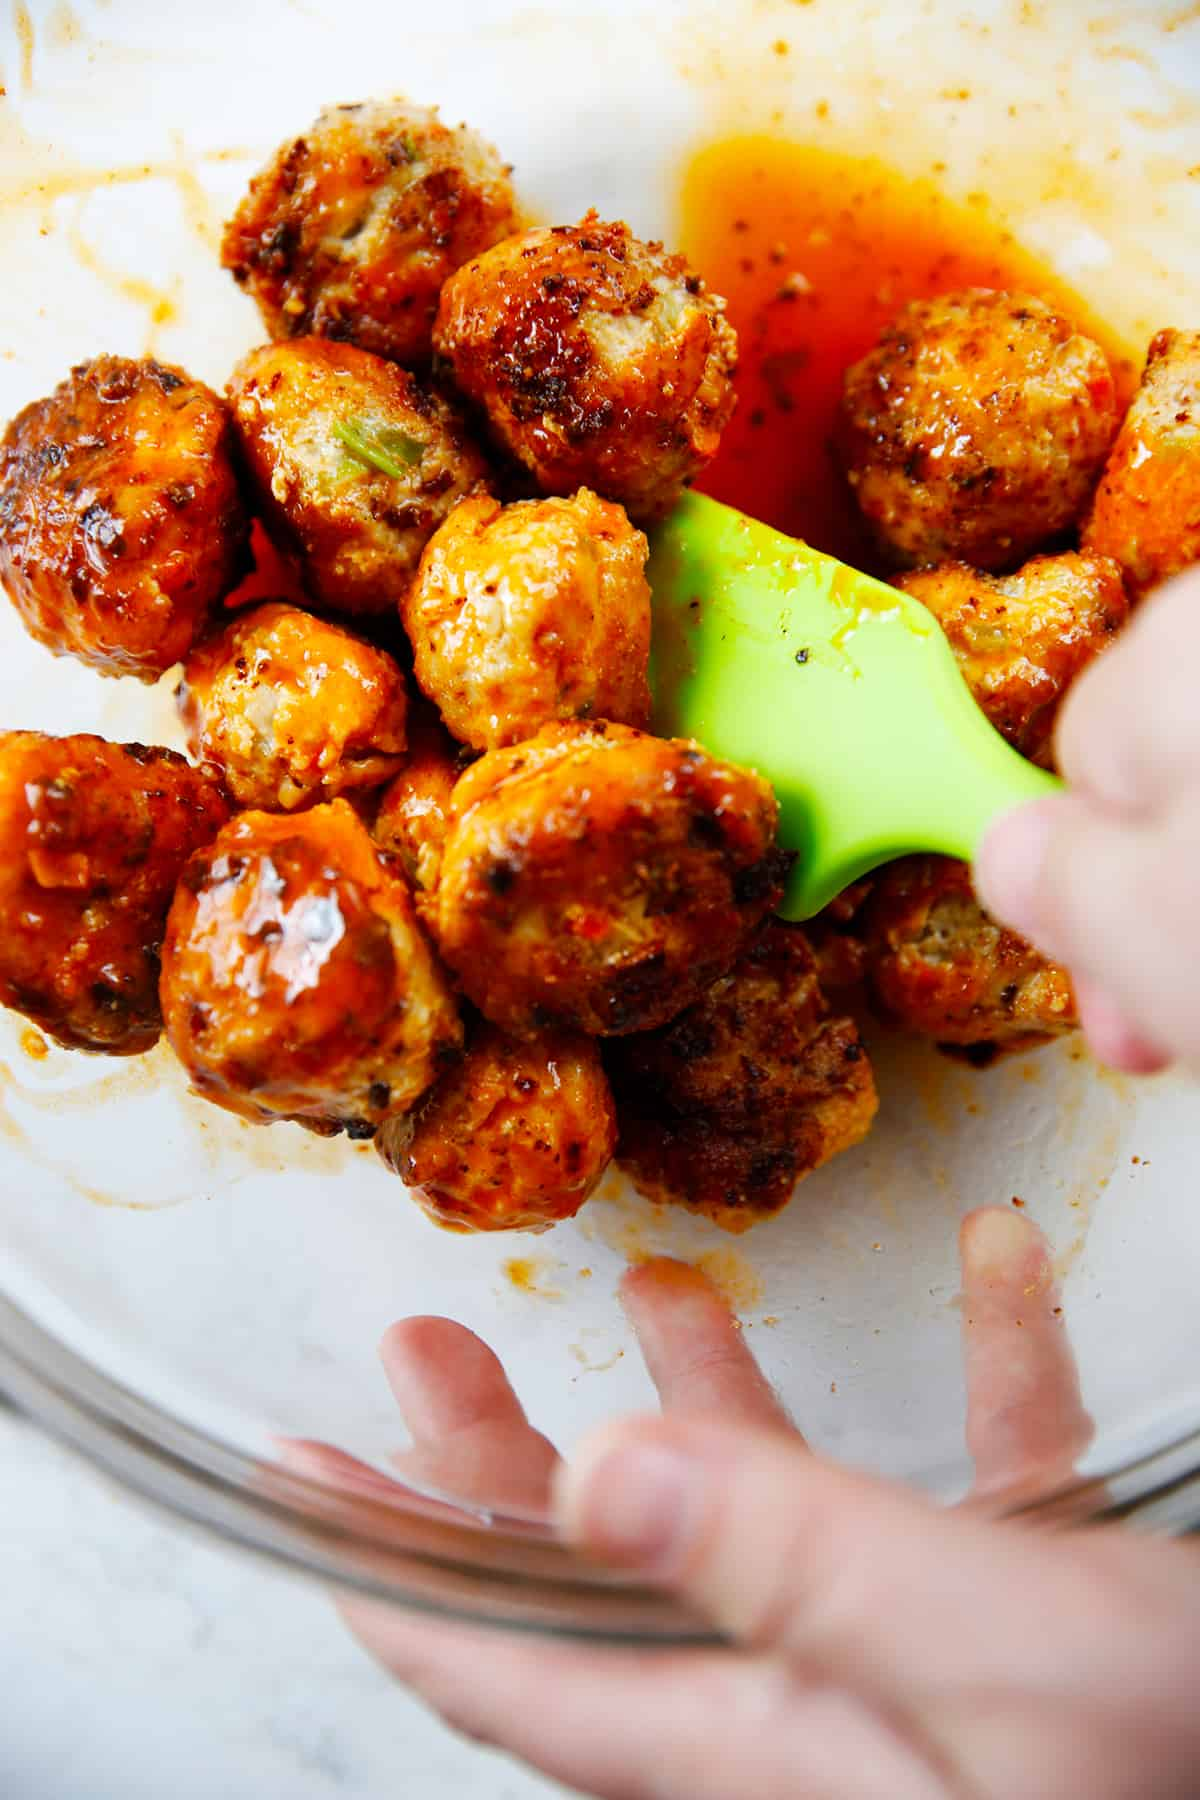 Chicken meatballs being coated in buffalo sauce in a bowl.